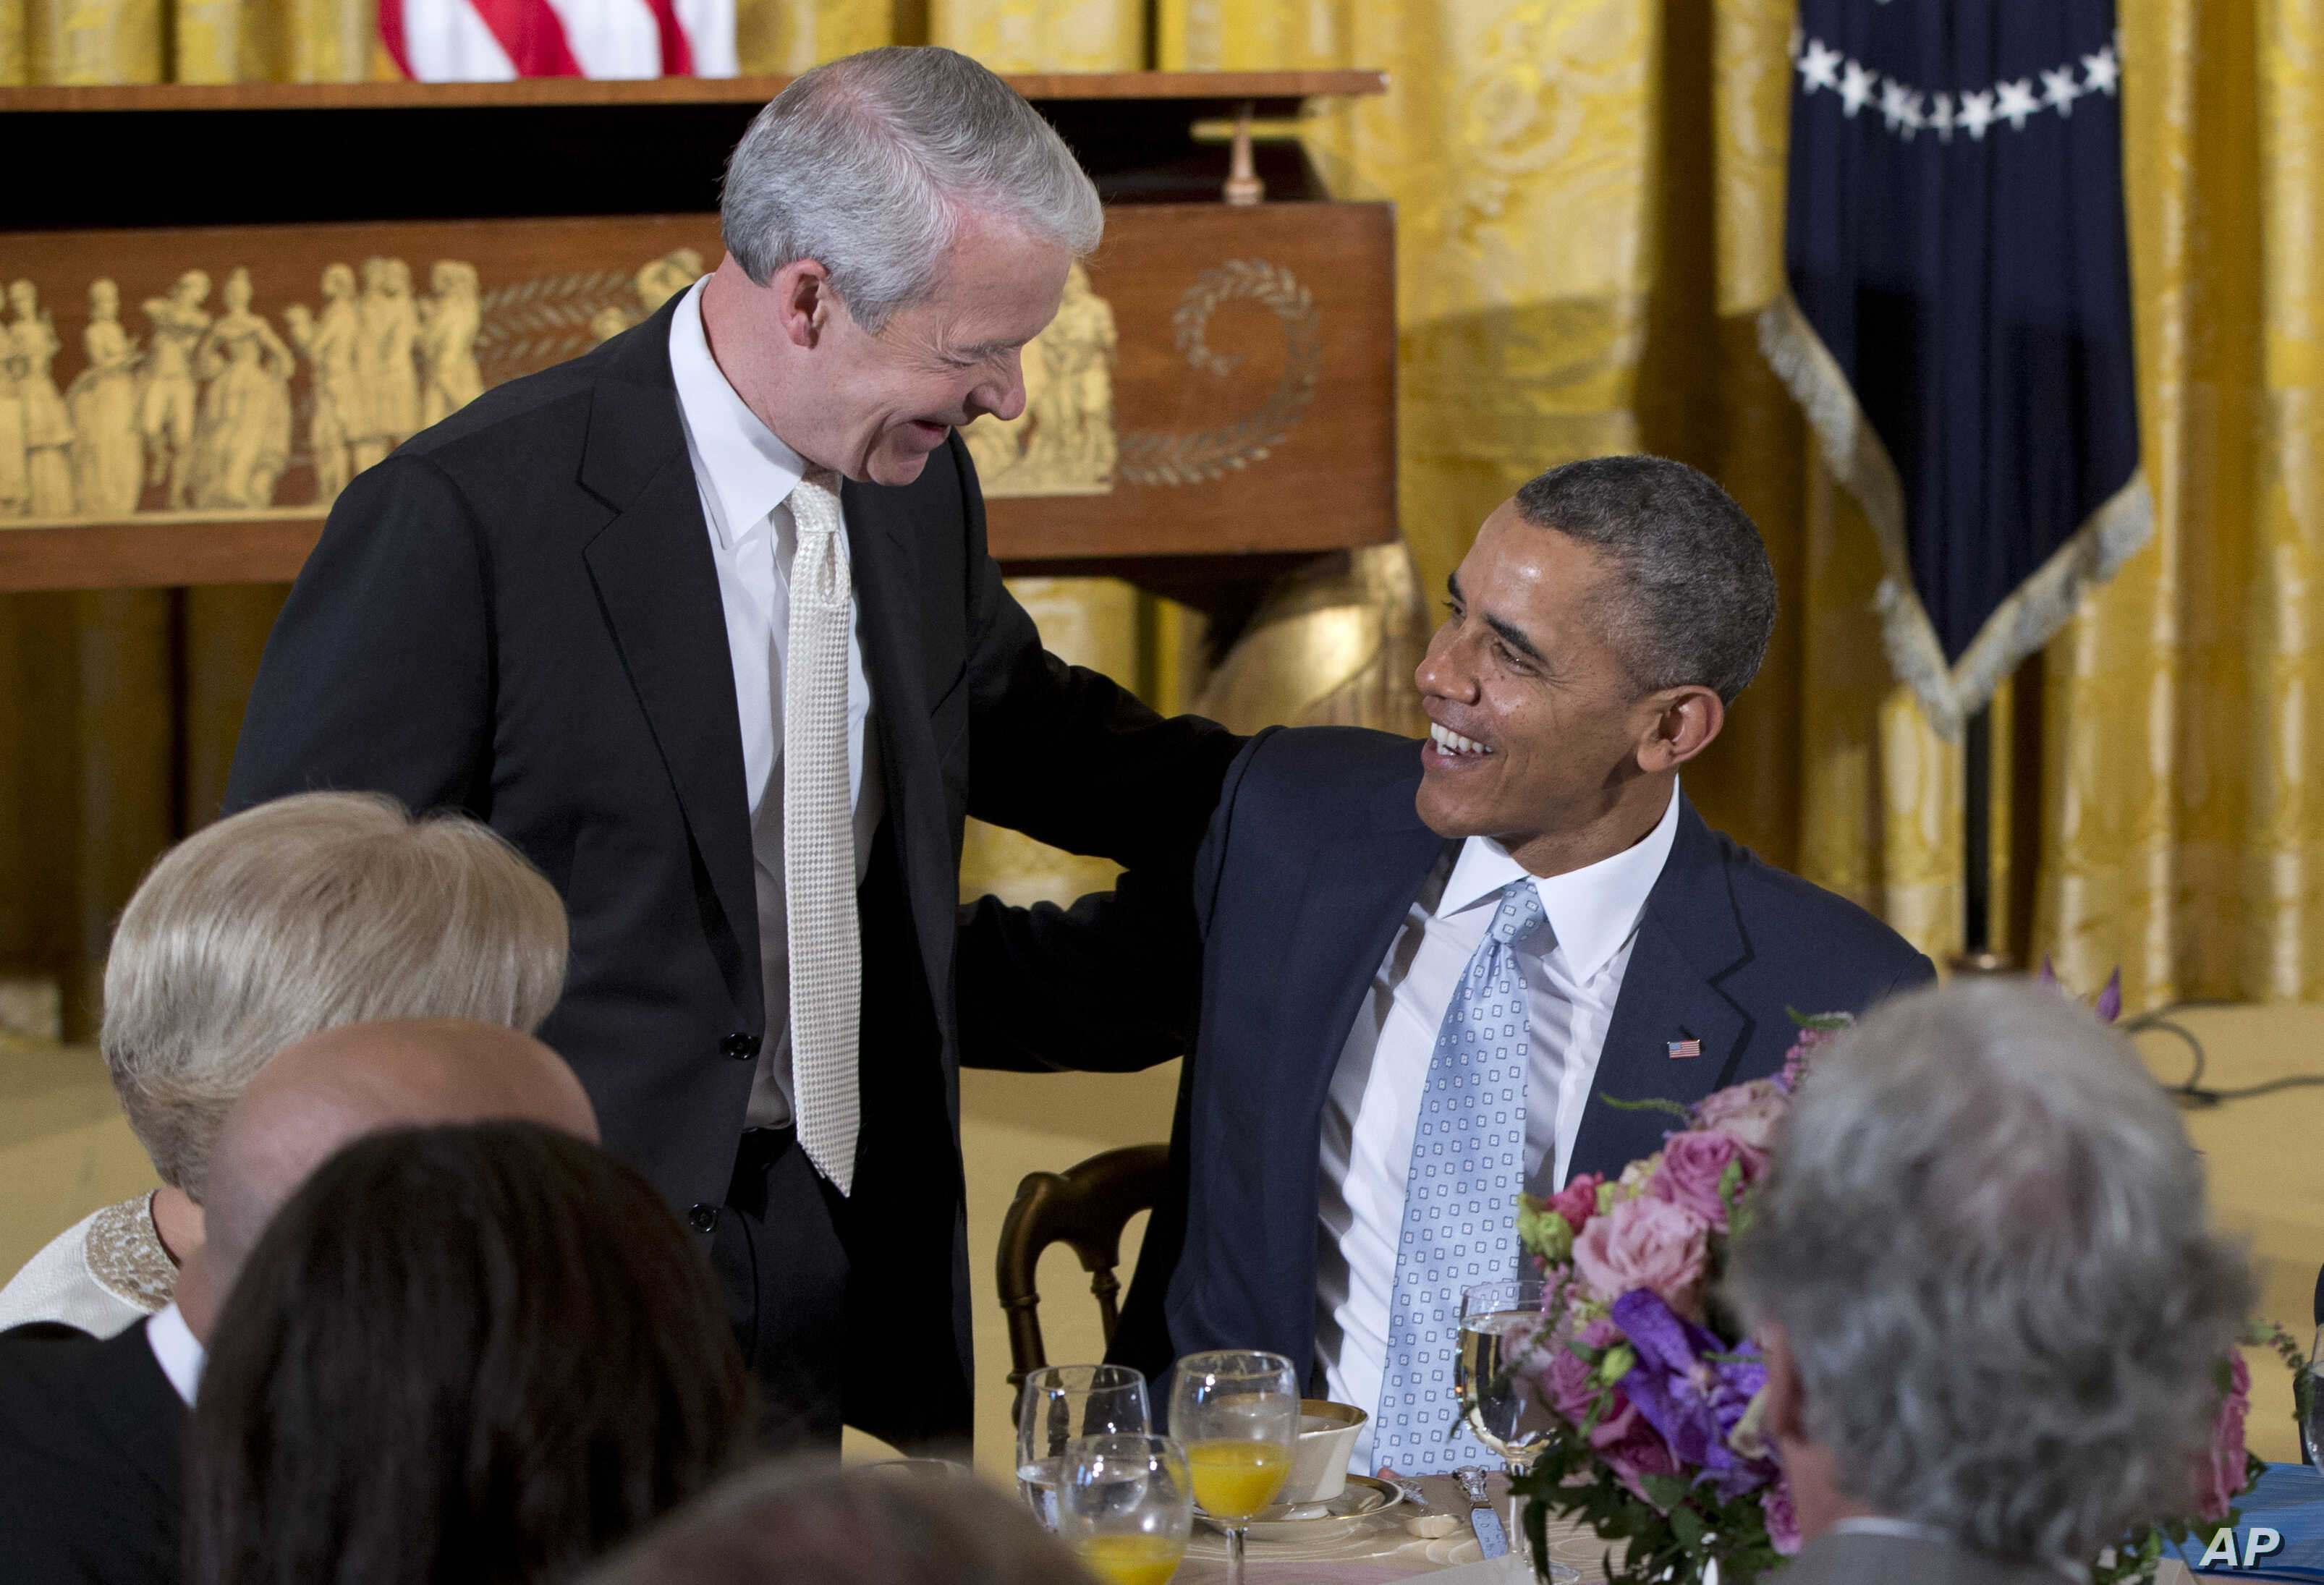 FILE - President Barack Obama greets the Rev. Joel Hunter, senior pastor of Northland, A Church Distributed, in Longwood, Fla., during the Easter Prayer Breakfast in the East Room of the White House in Washington.